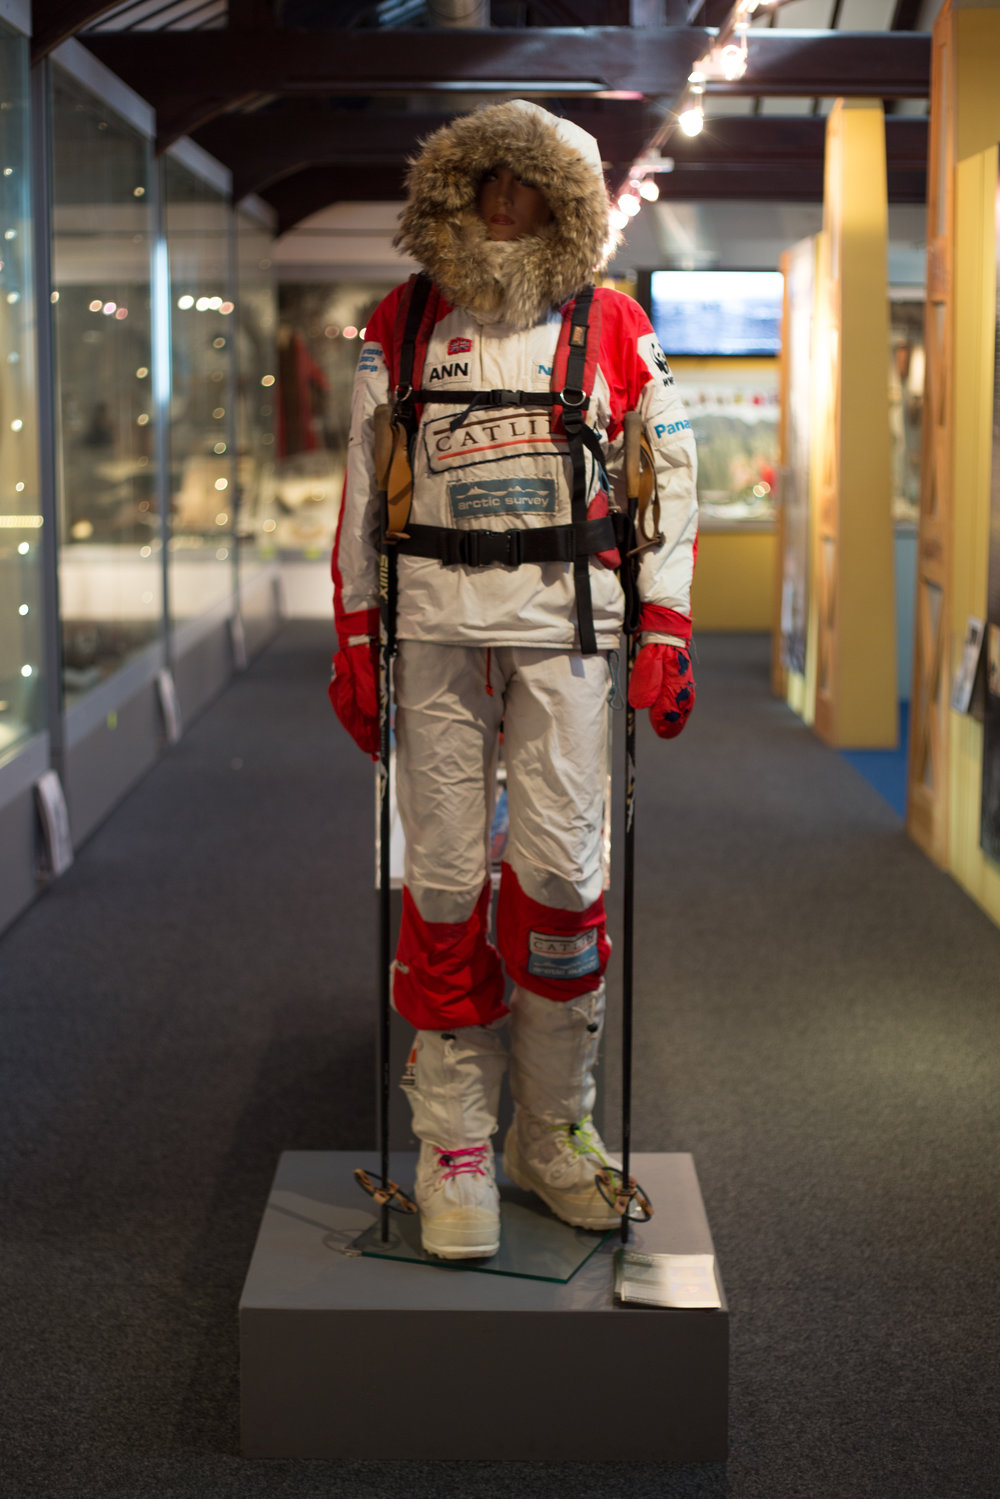 Ann Daniels Polar Equipment, Torquay Museum, The Shorely